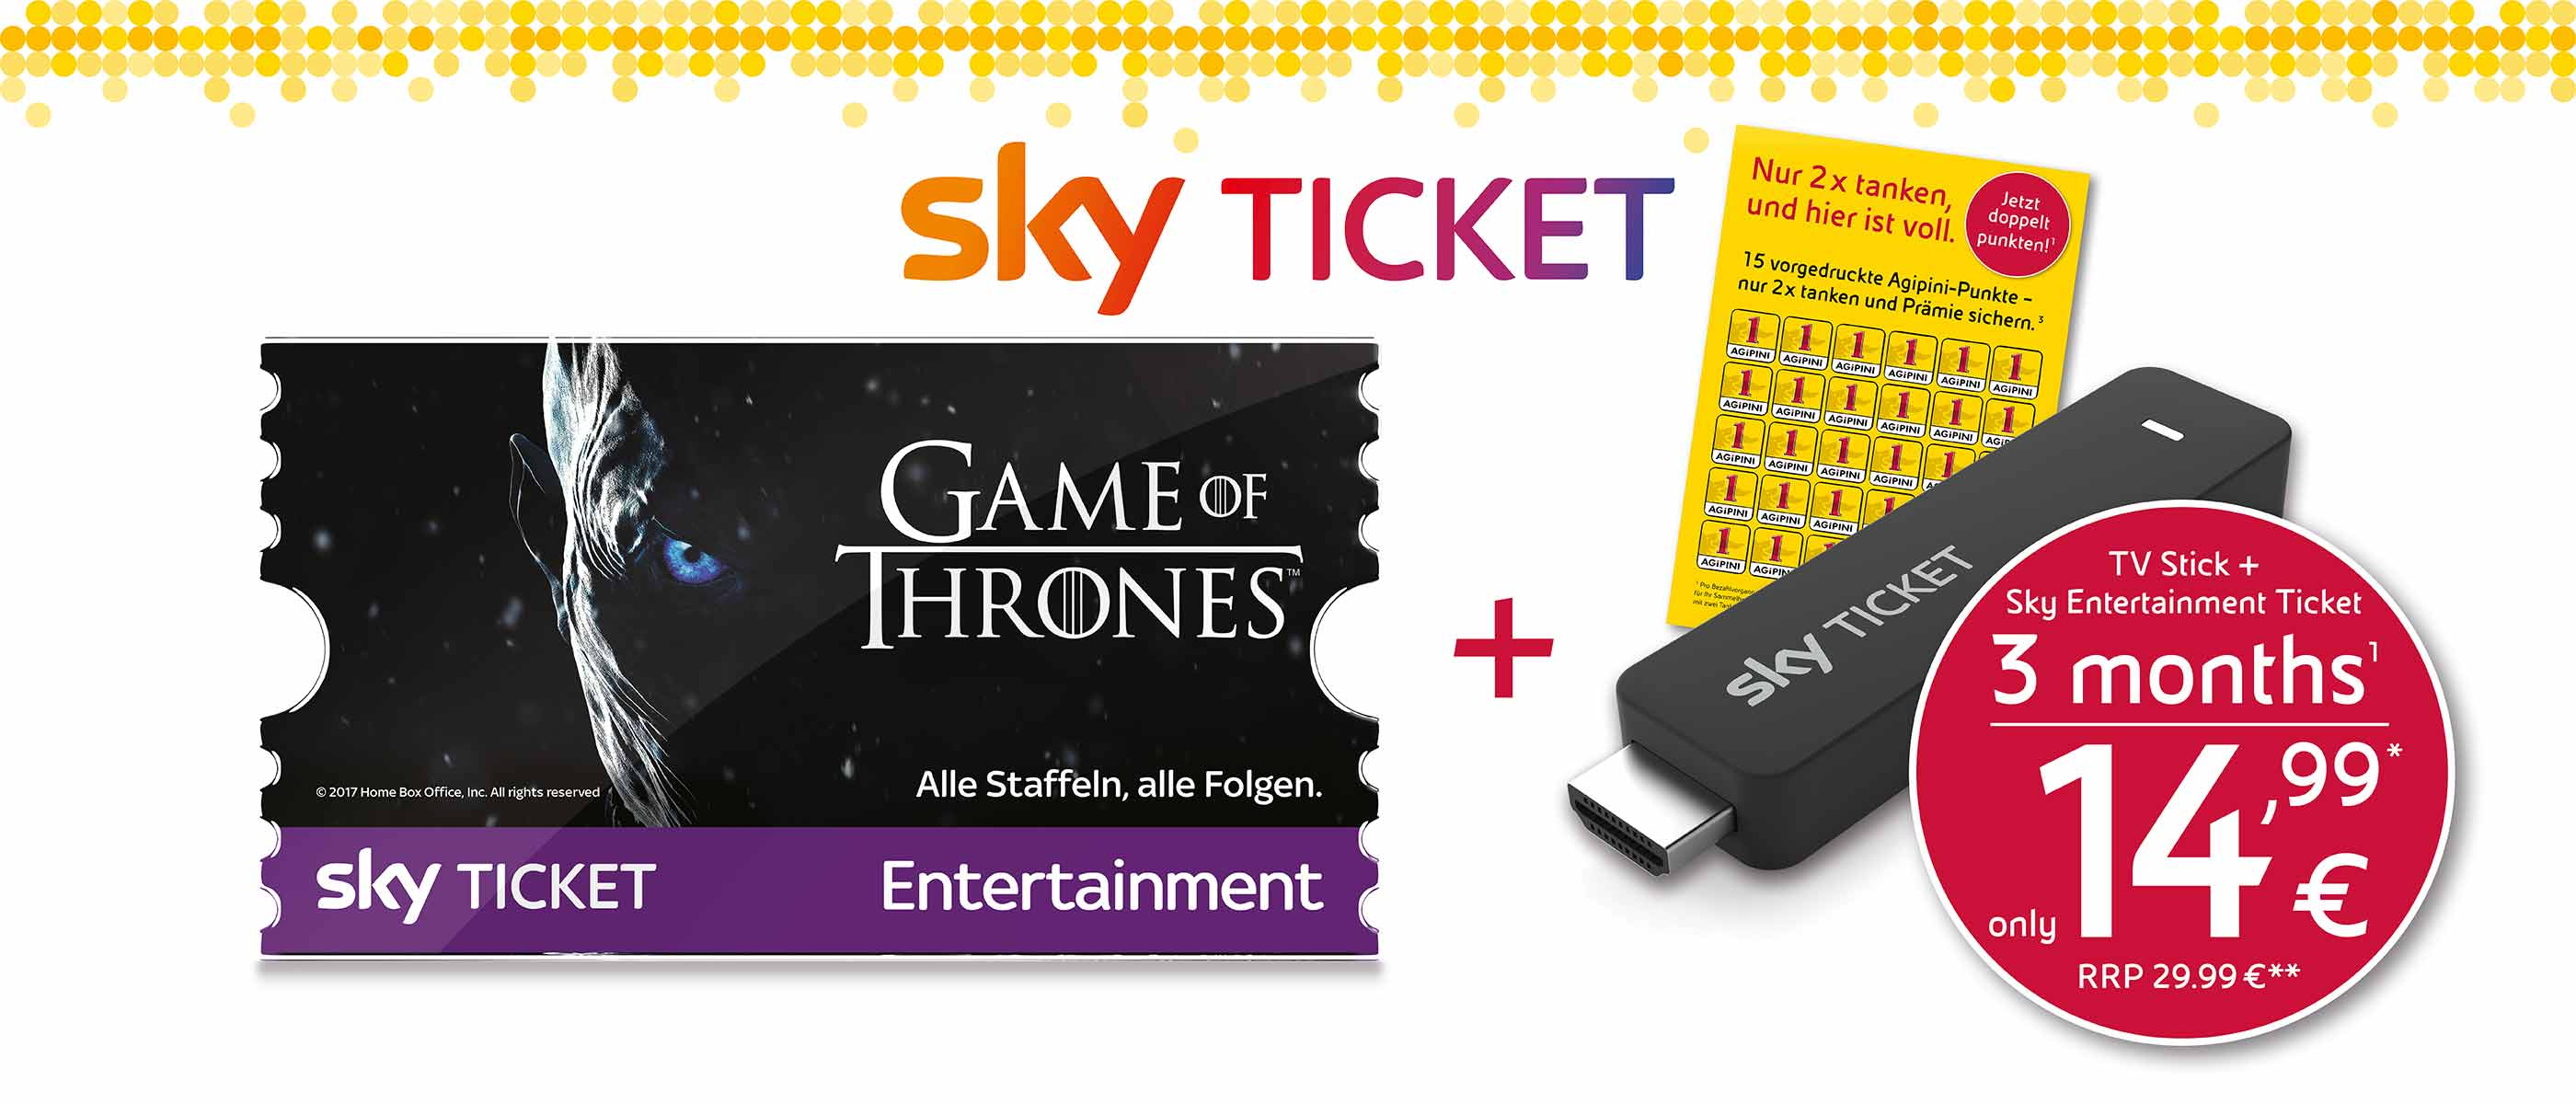 Agipini Sky Ticket Promotion